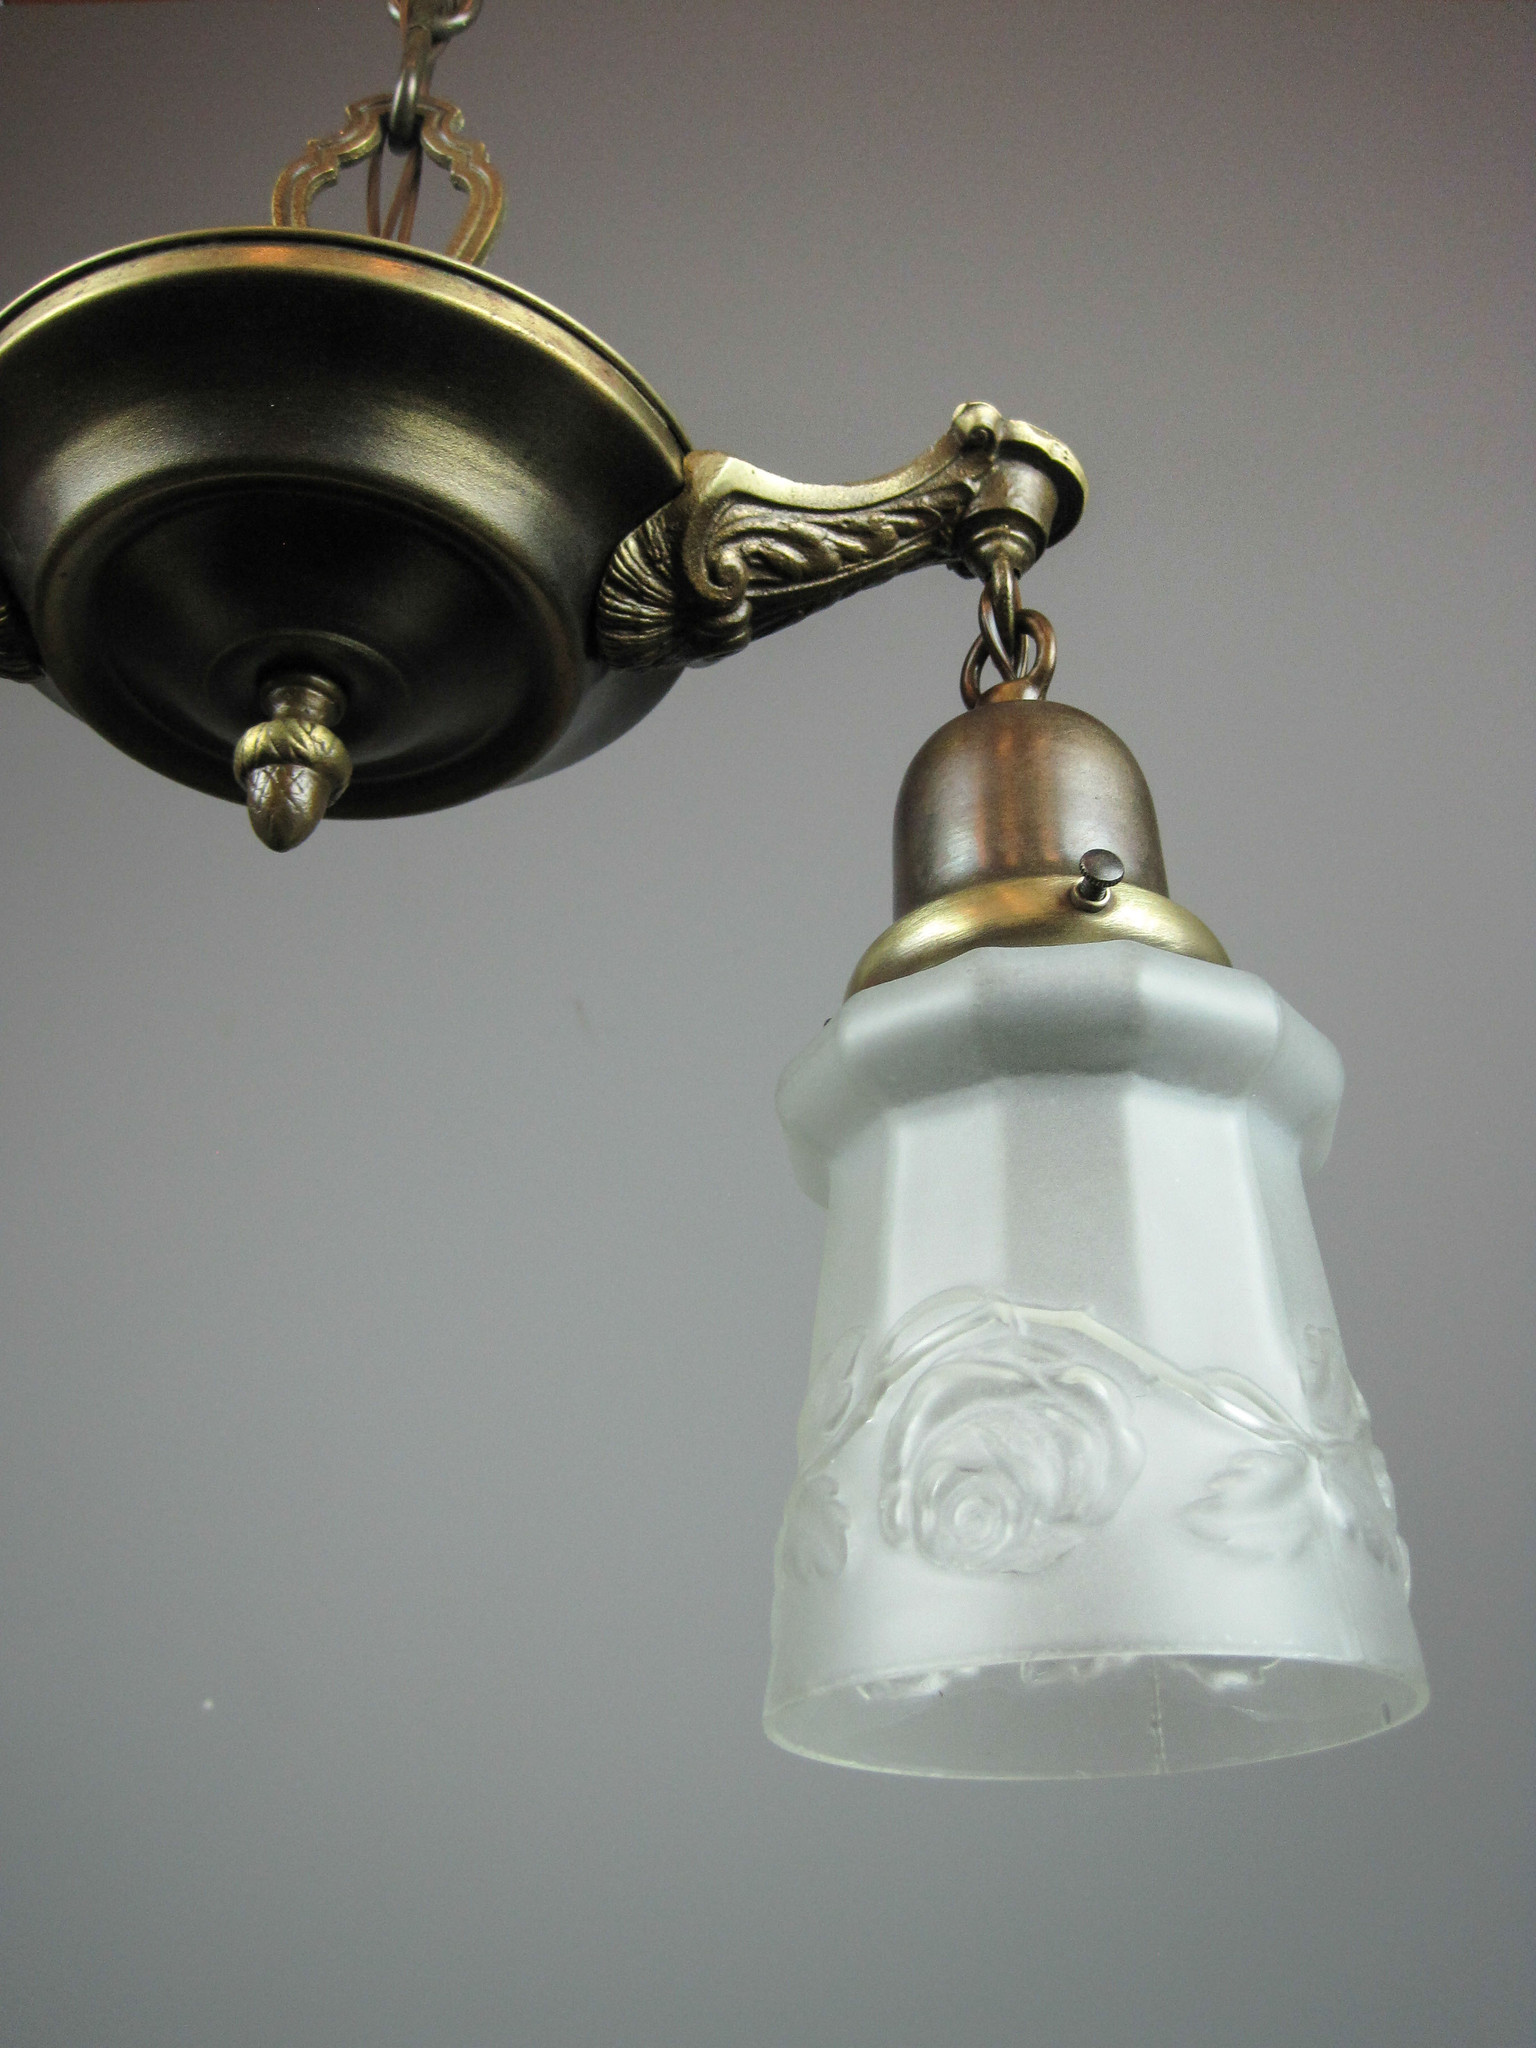 Original Pan Light Fixture 2 Light